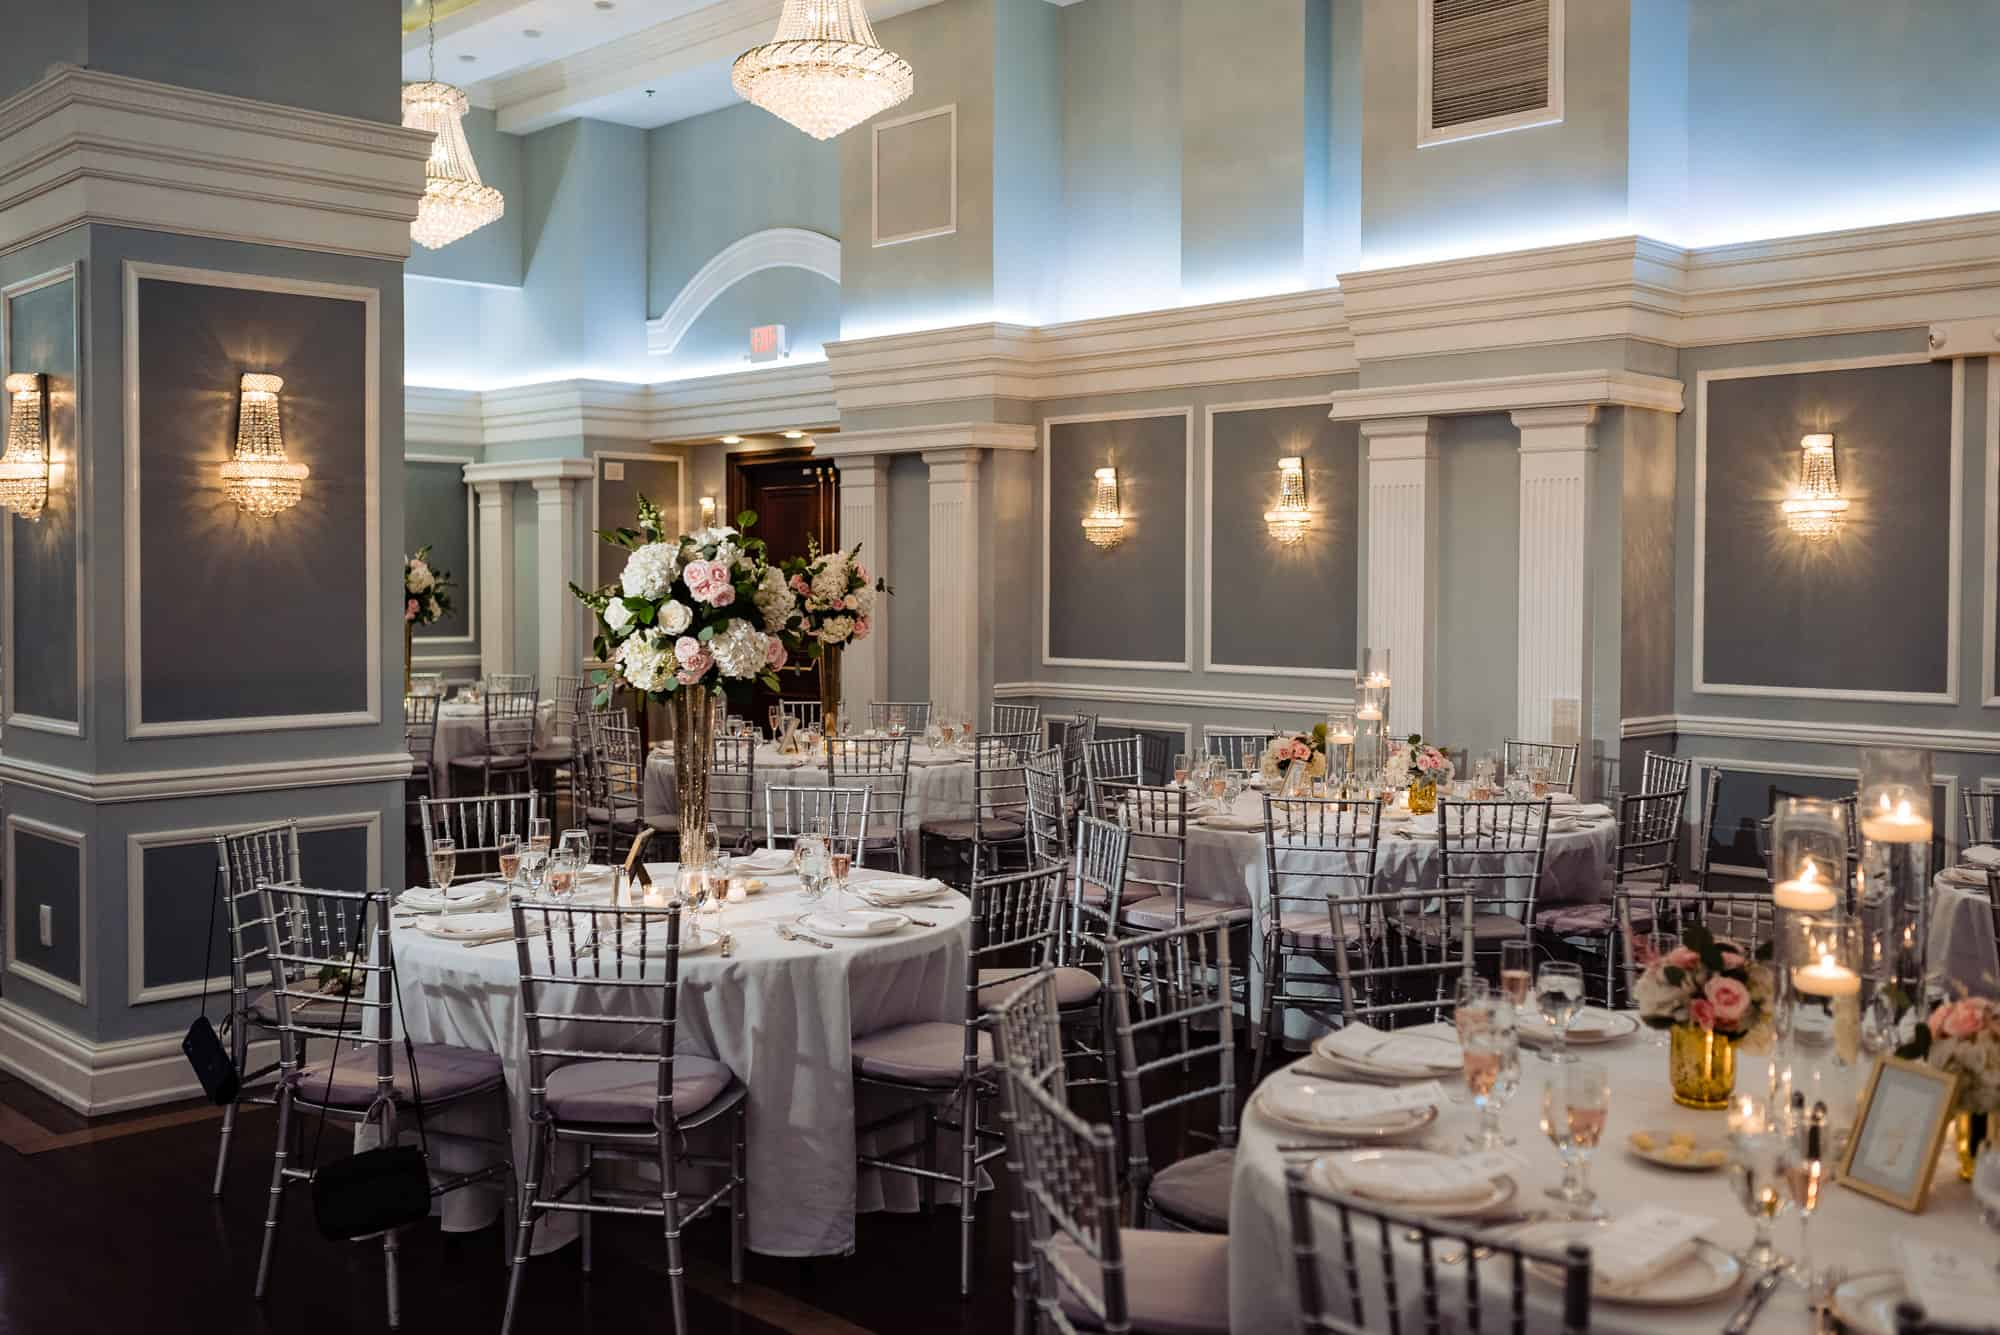 Image of wedding reception setup for an Arts Ballroom Wedding in Philadelphia